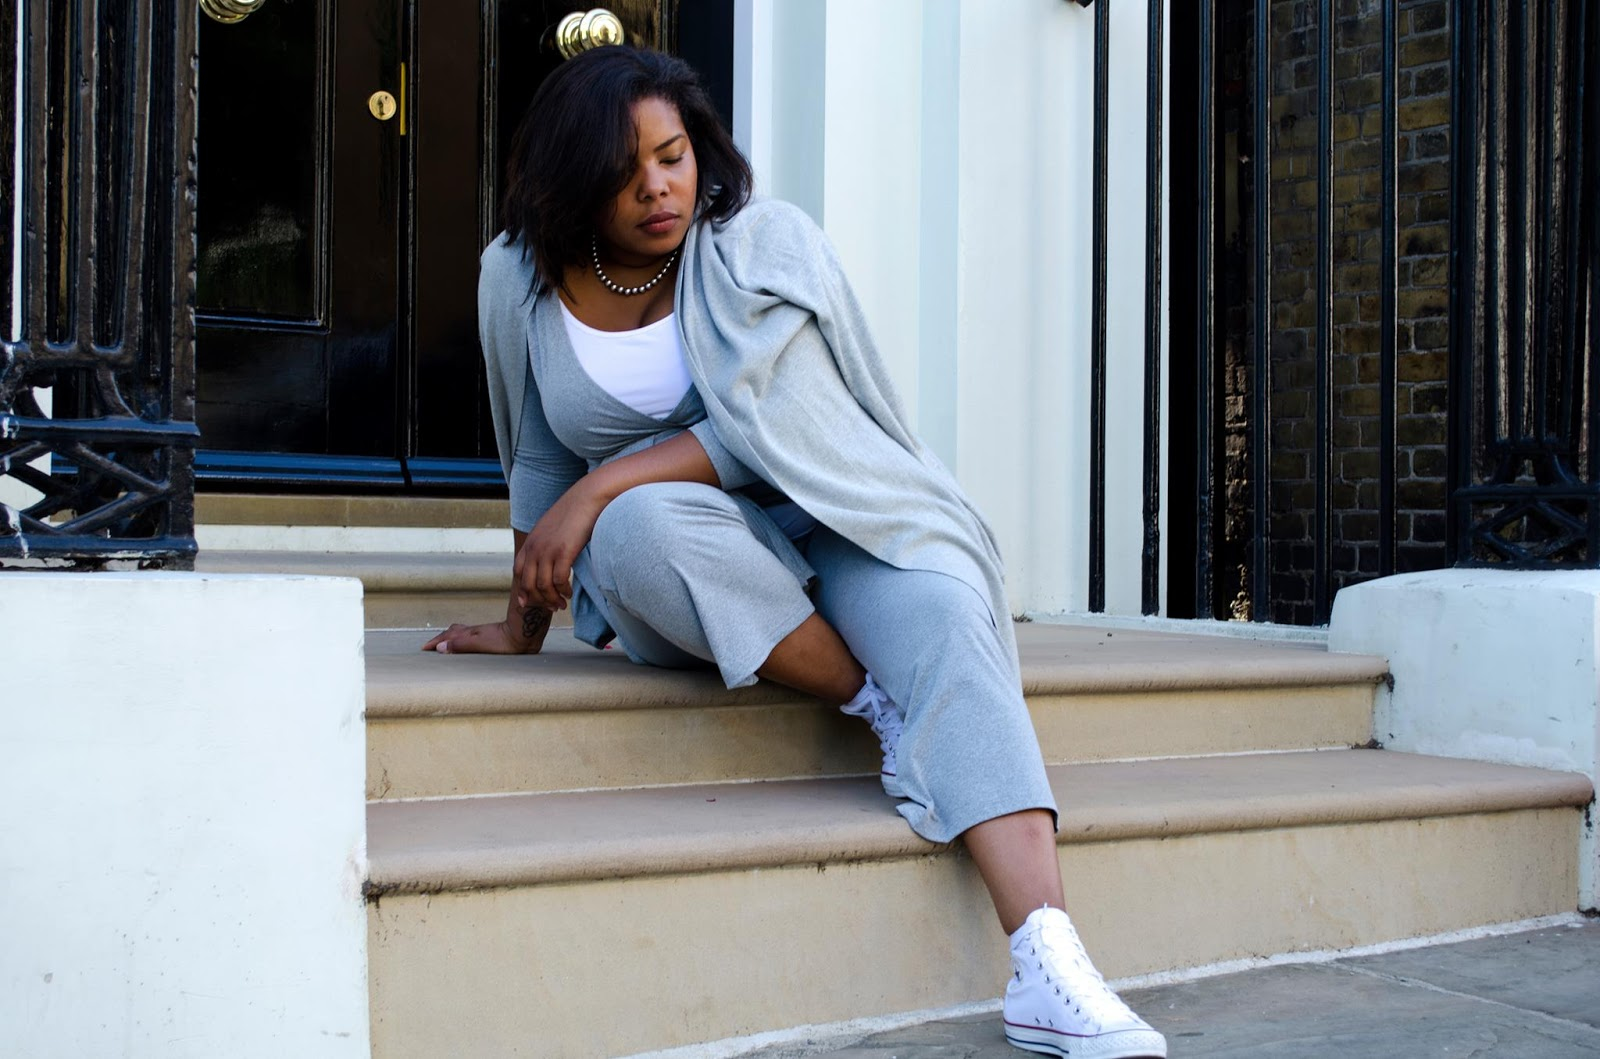 Plus size fashion: social media and its impact – an interview with Chloe Pierre